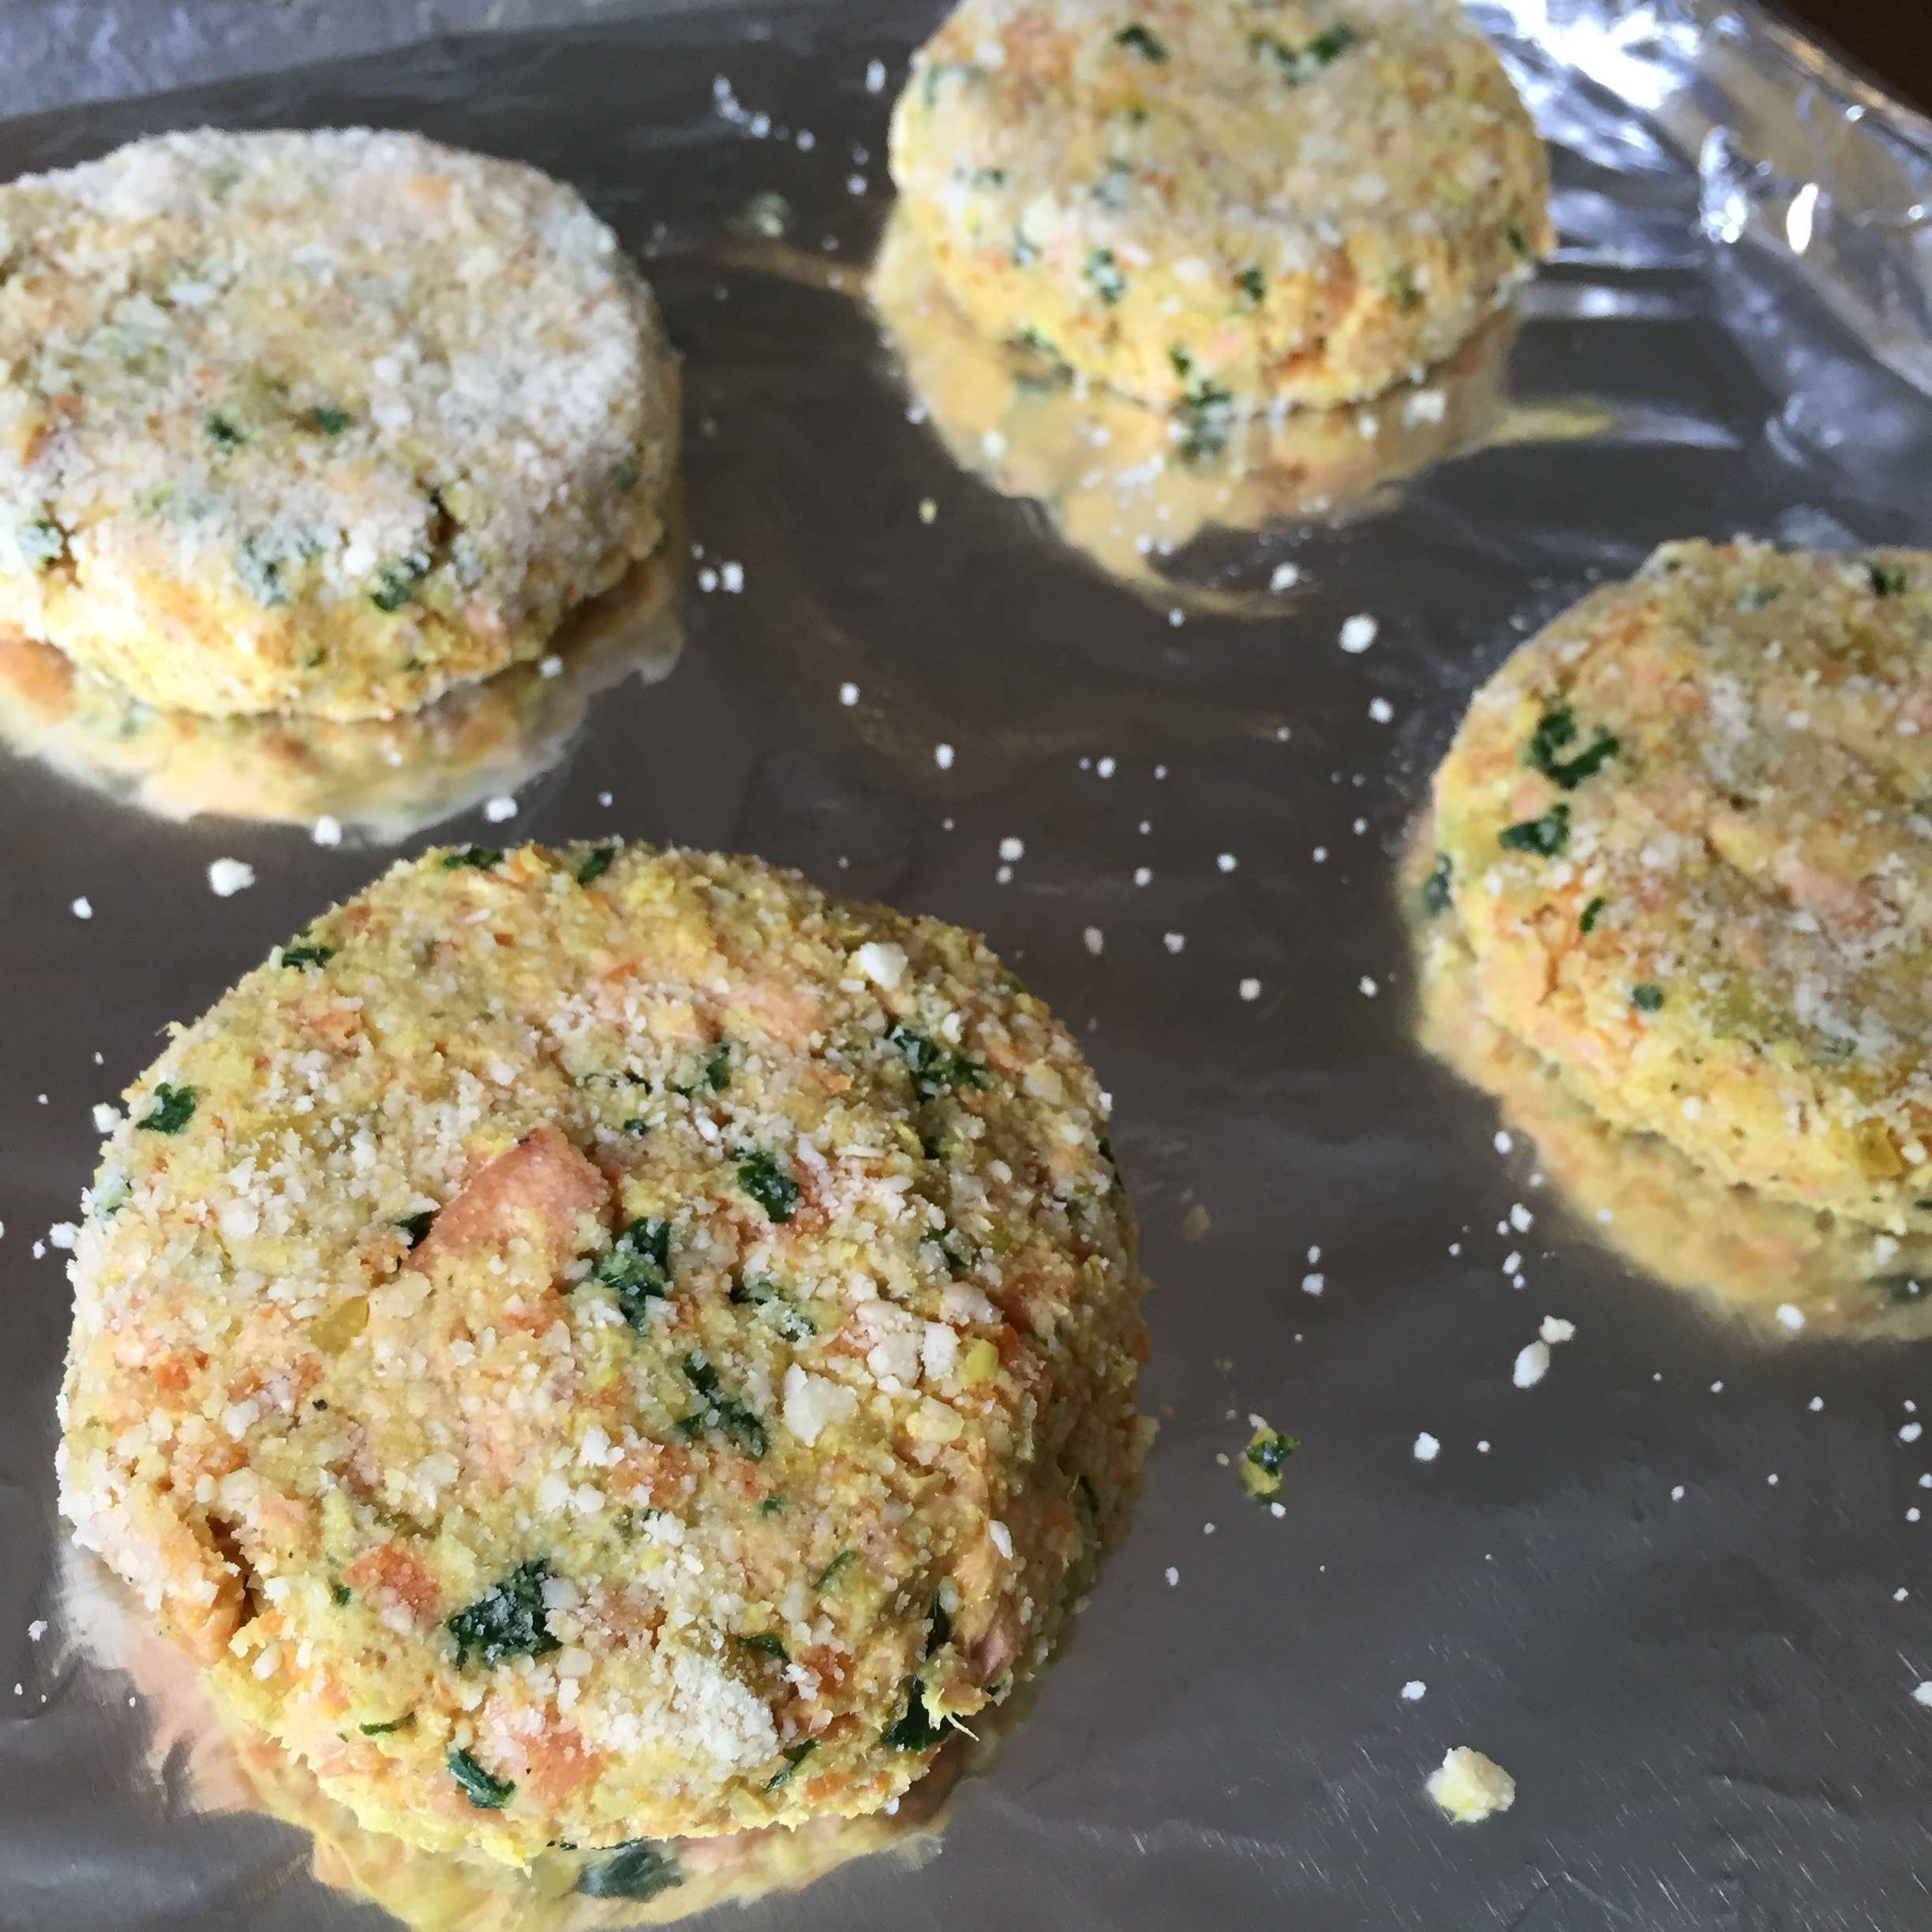 Picture of Cooking the Salmon Cakes